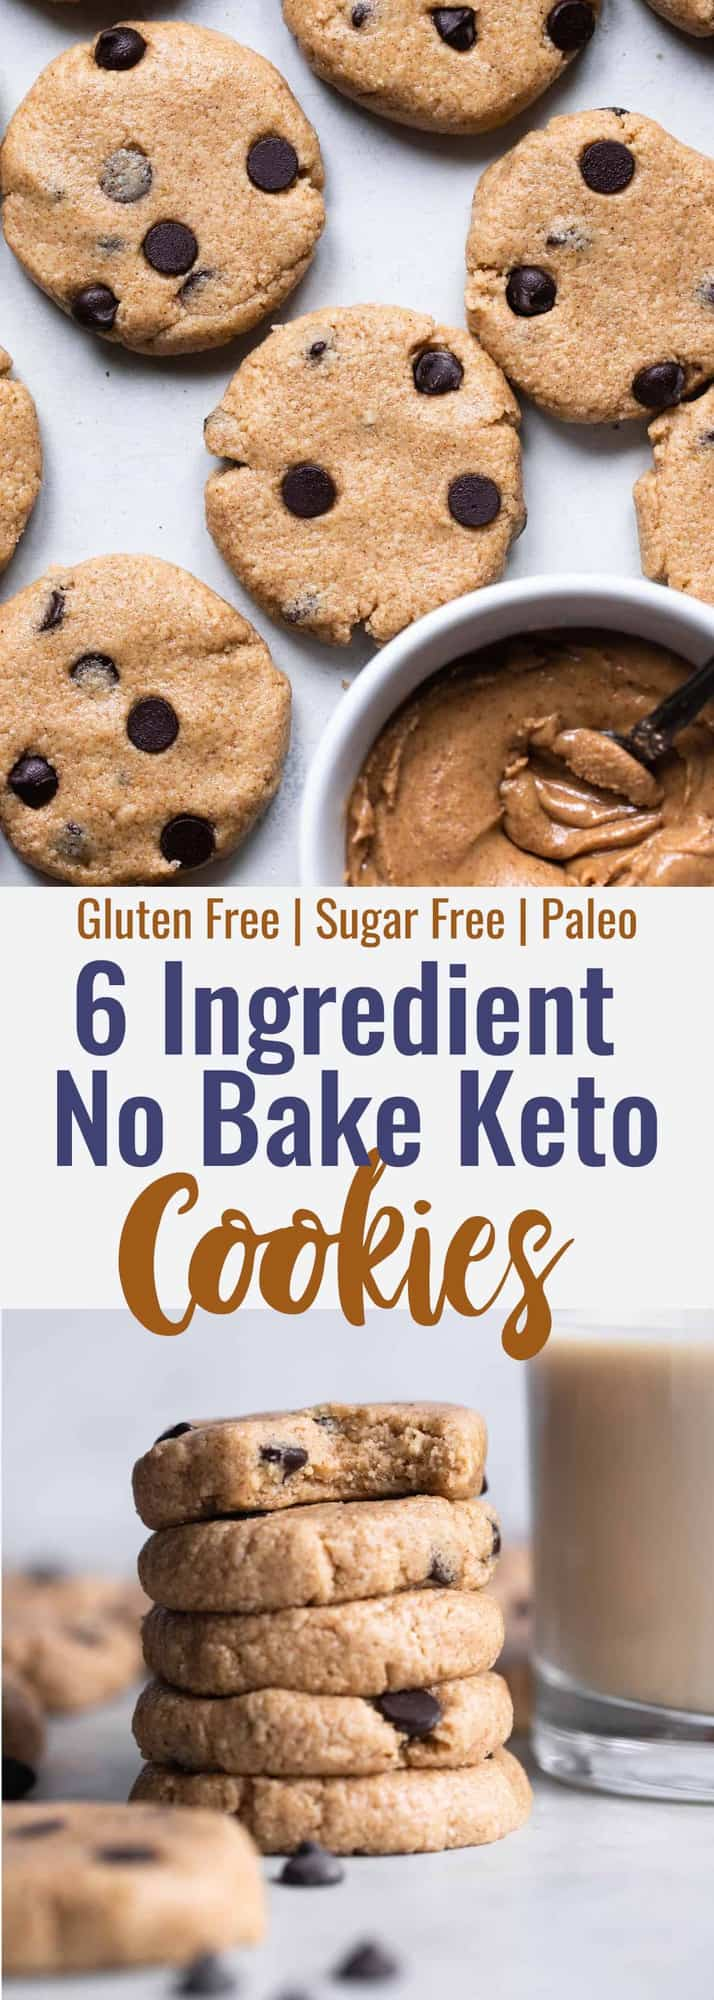 Almond Joy Keto No Bake Cookies - These soft and chewy, low carb and keto no bake cookies are sugar, gluten and dairy free but not taste free! Only 6 ingredients and super simple to make! | #Foodfaithfitness | #Glutenfree #Keto #Sugarfree #Lowcarb #Paleo